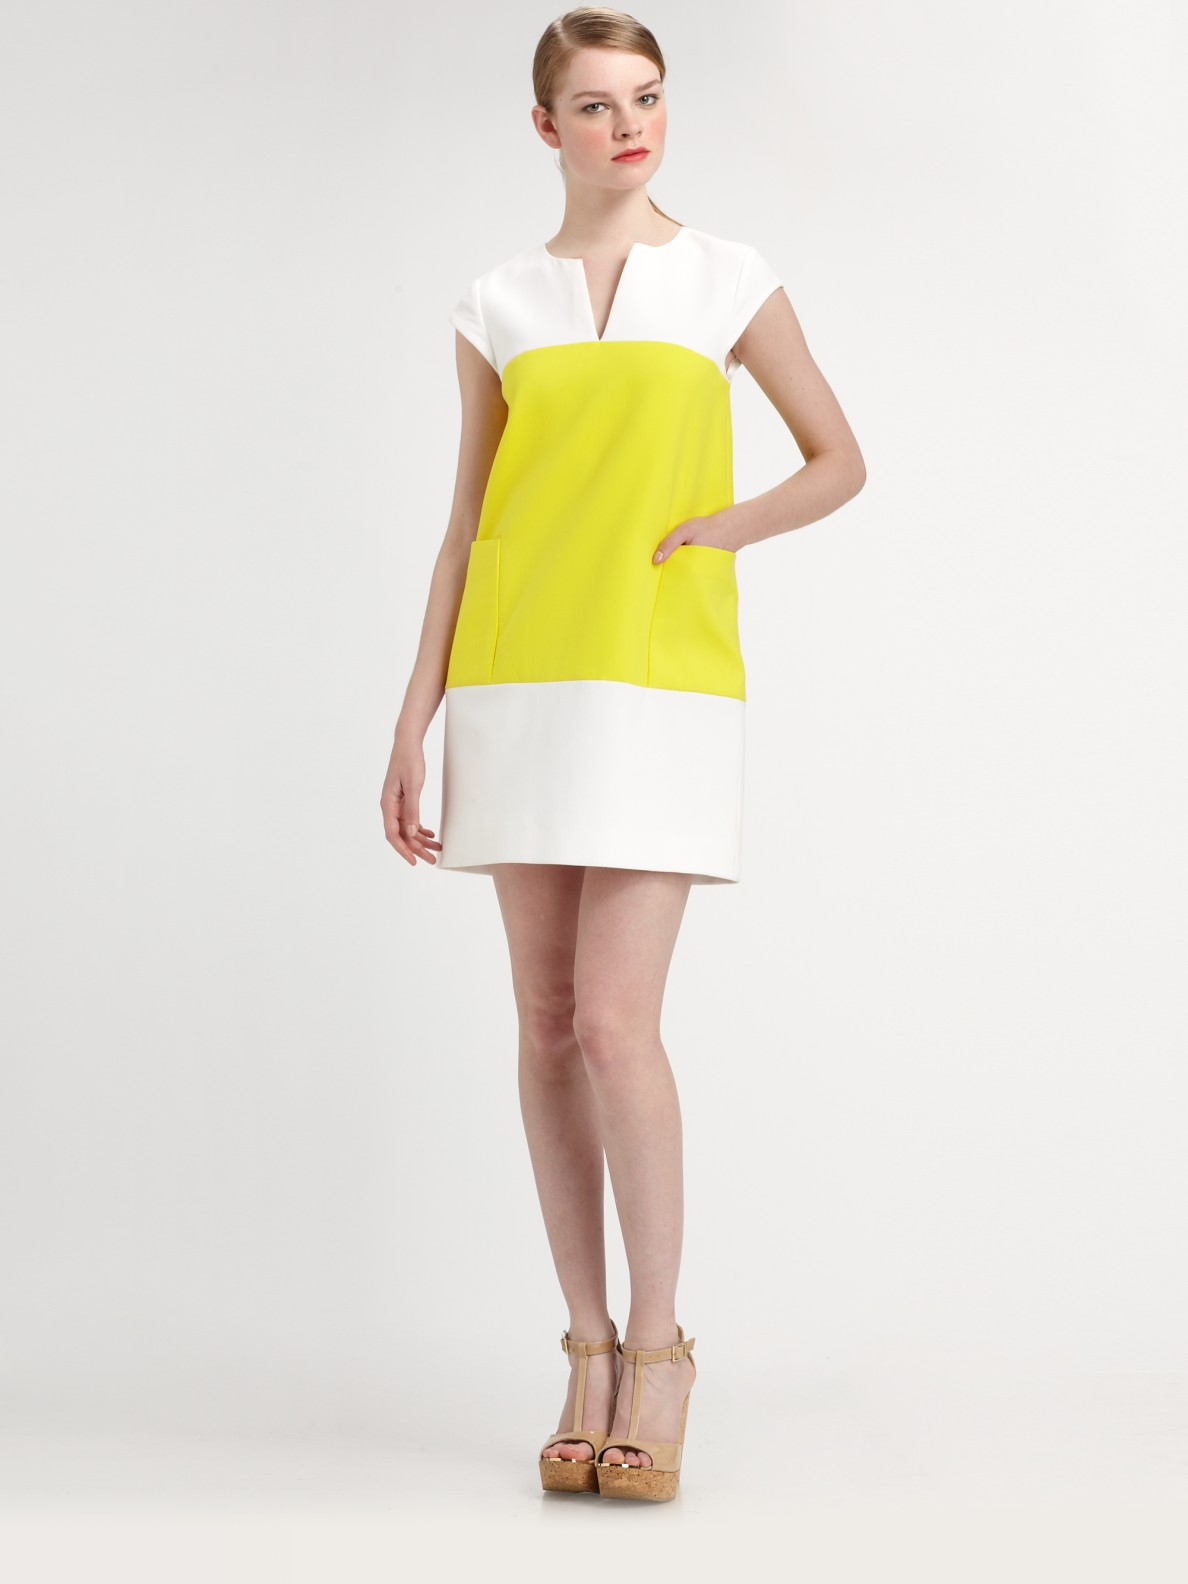 Kate spade new york Colorblock Shift Dress in Yellow | Lyst